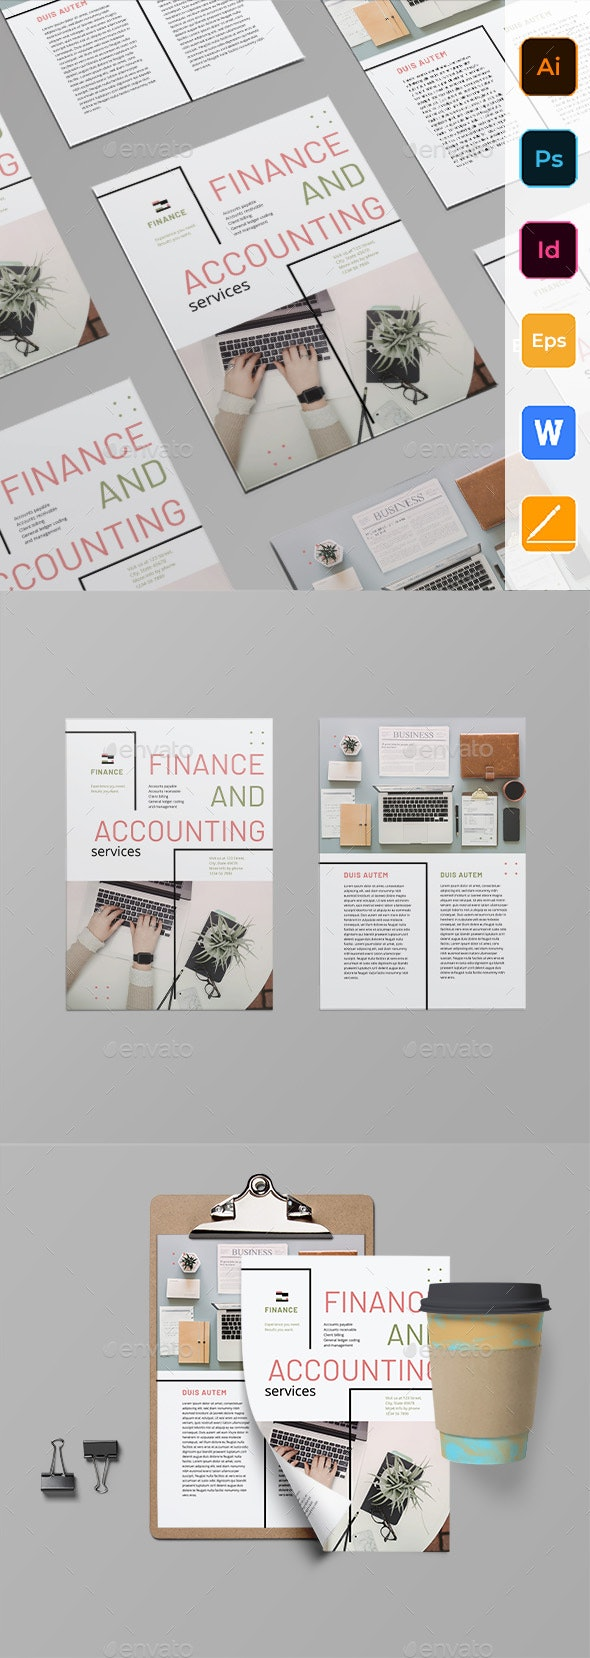 Finance and Accounting Flyer - Corporate Flyers